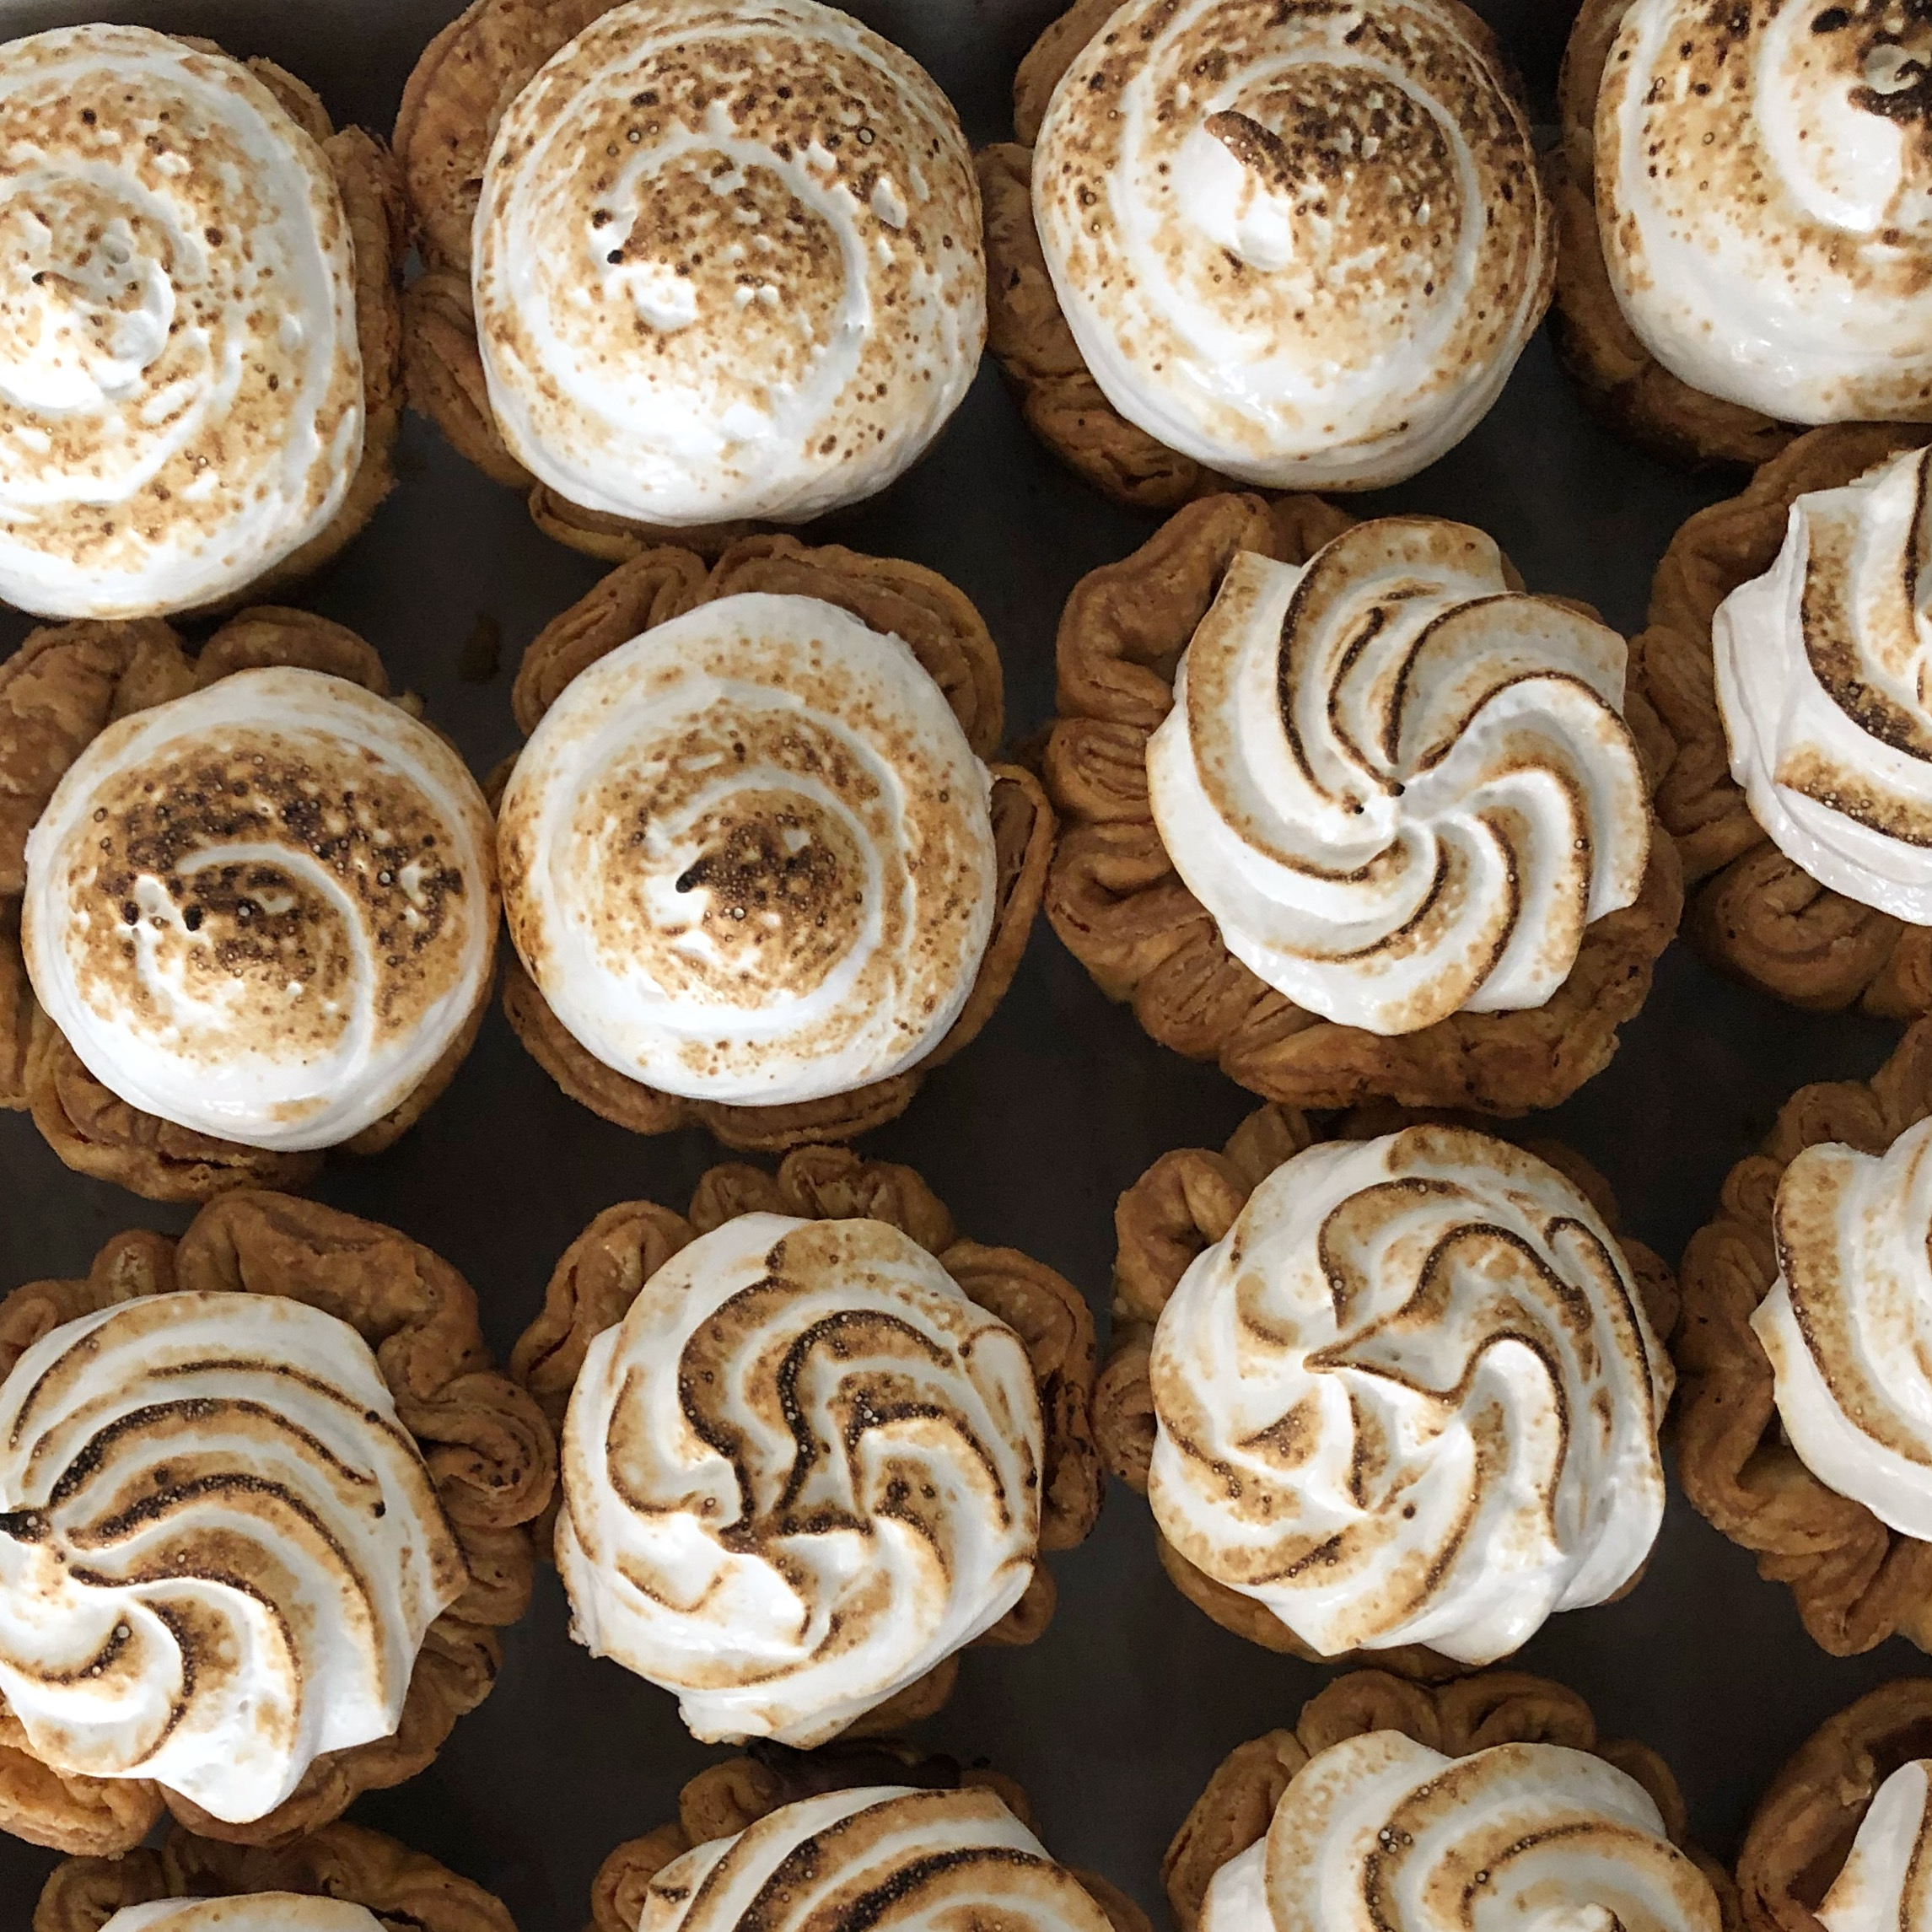 The ideal meringue is stiff on the outside, fluffy on the inside, and lightly toasted.